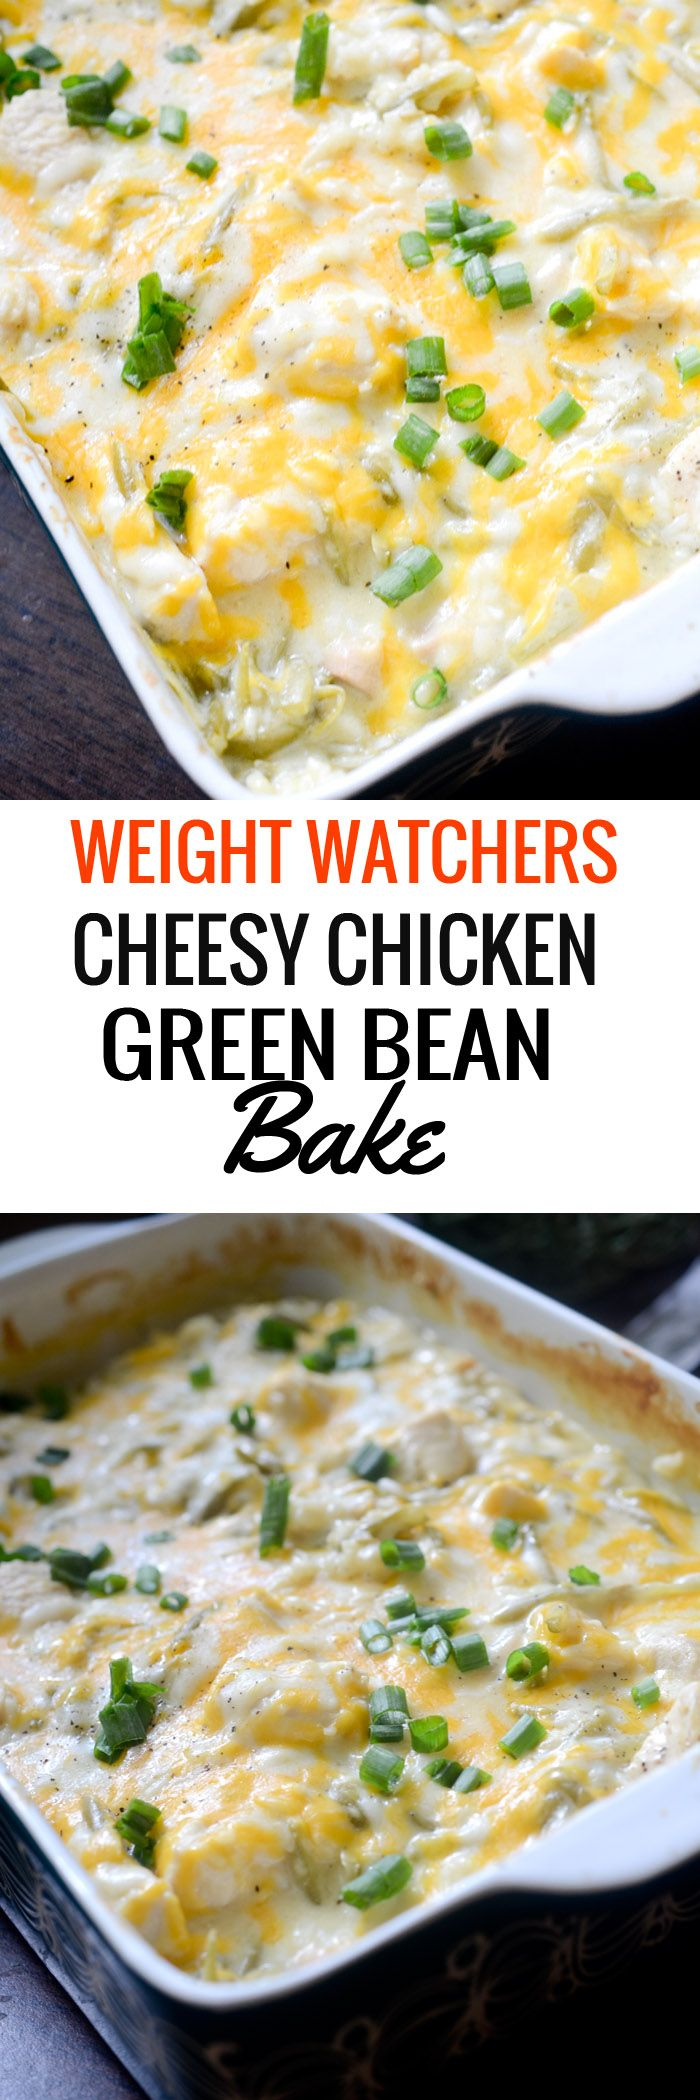 Cheesy Chicken Green Bean Bake                              …